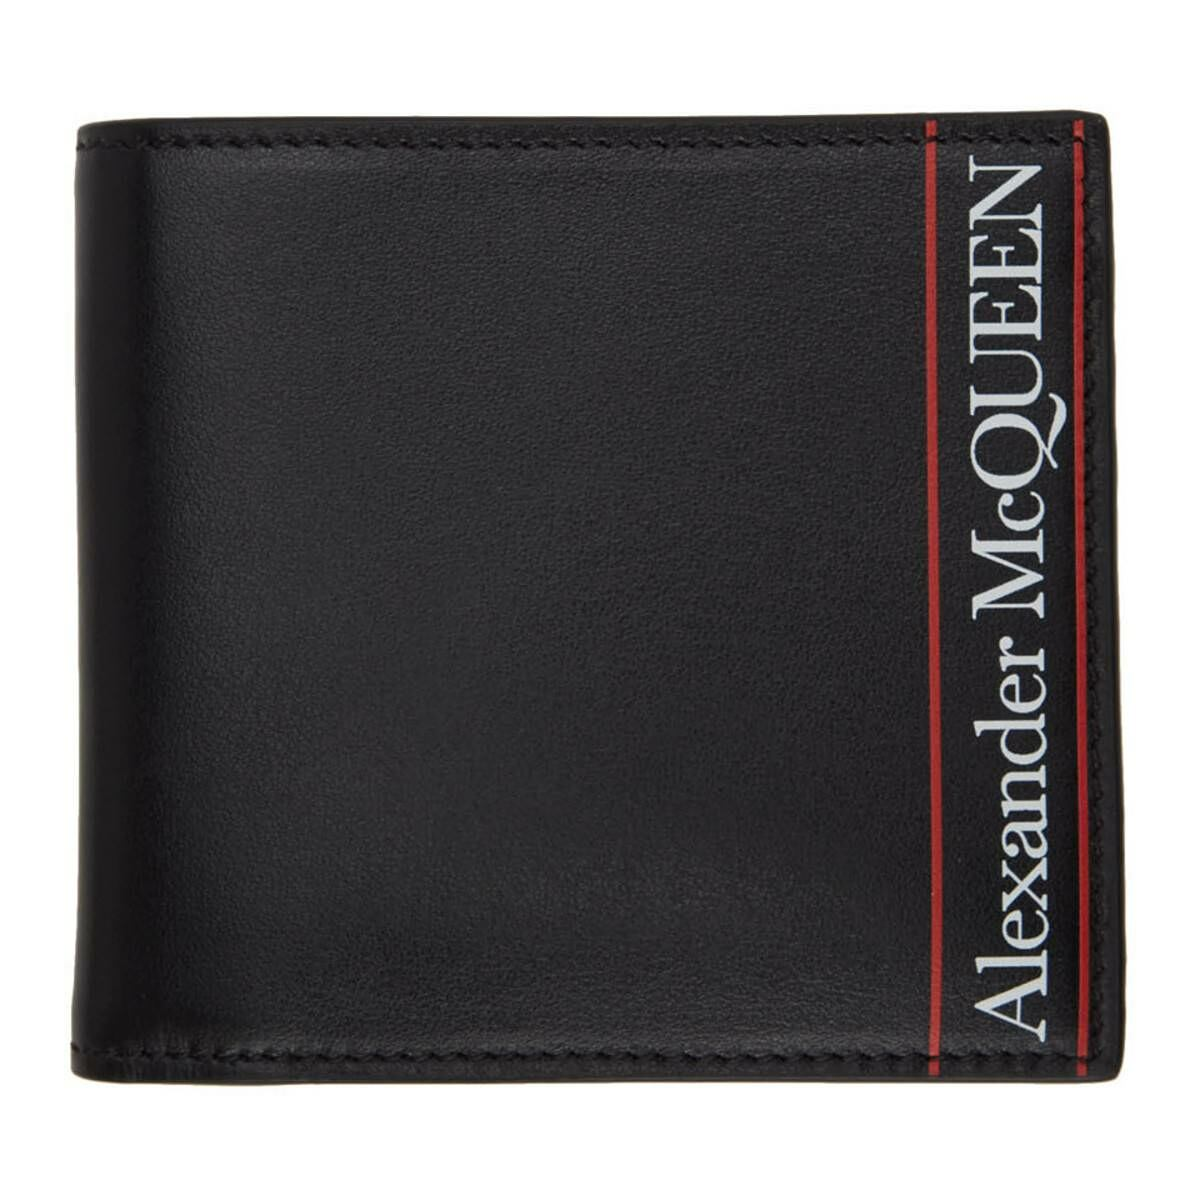 Alexander McQueen Black and Red Logo Bifold Wallet Ssense USA MEN Men ACCESSORIES Mens WALLETS